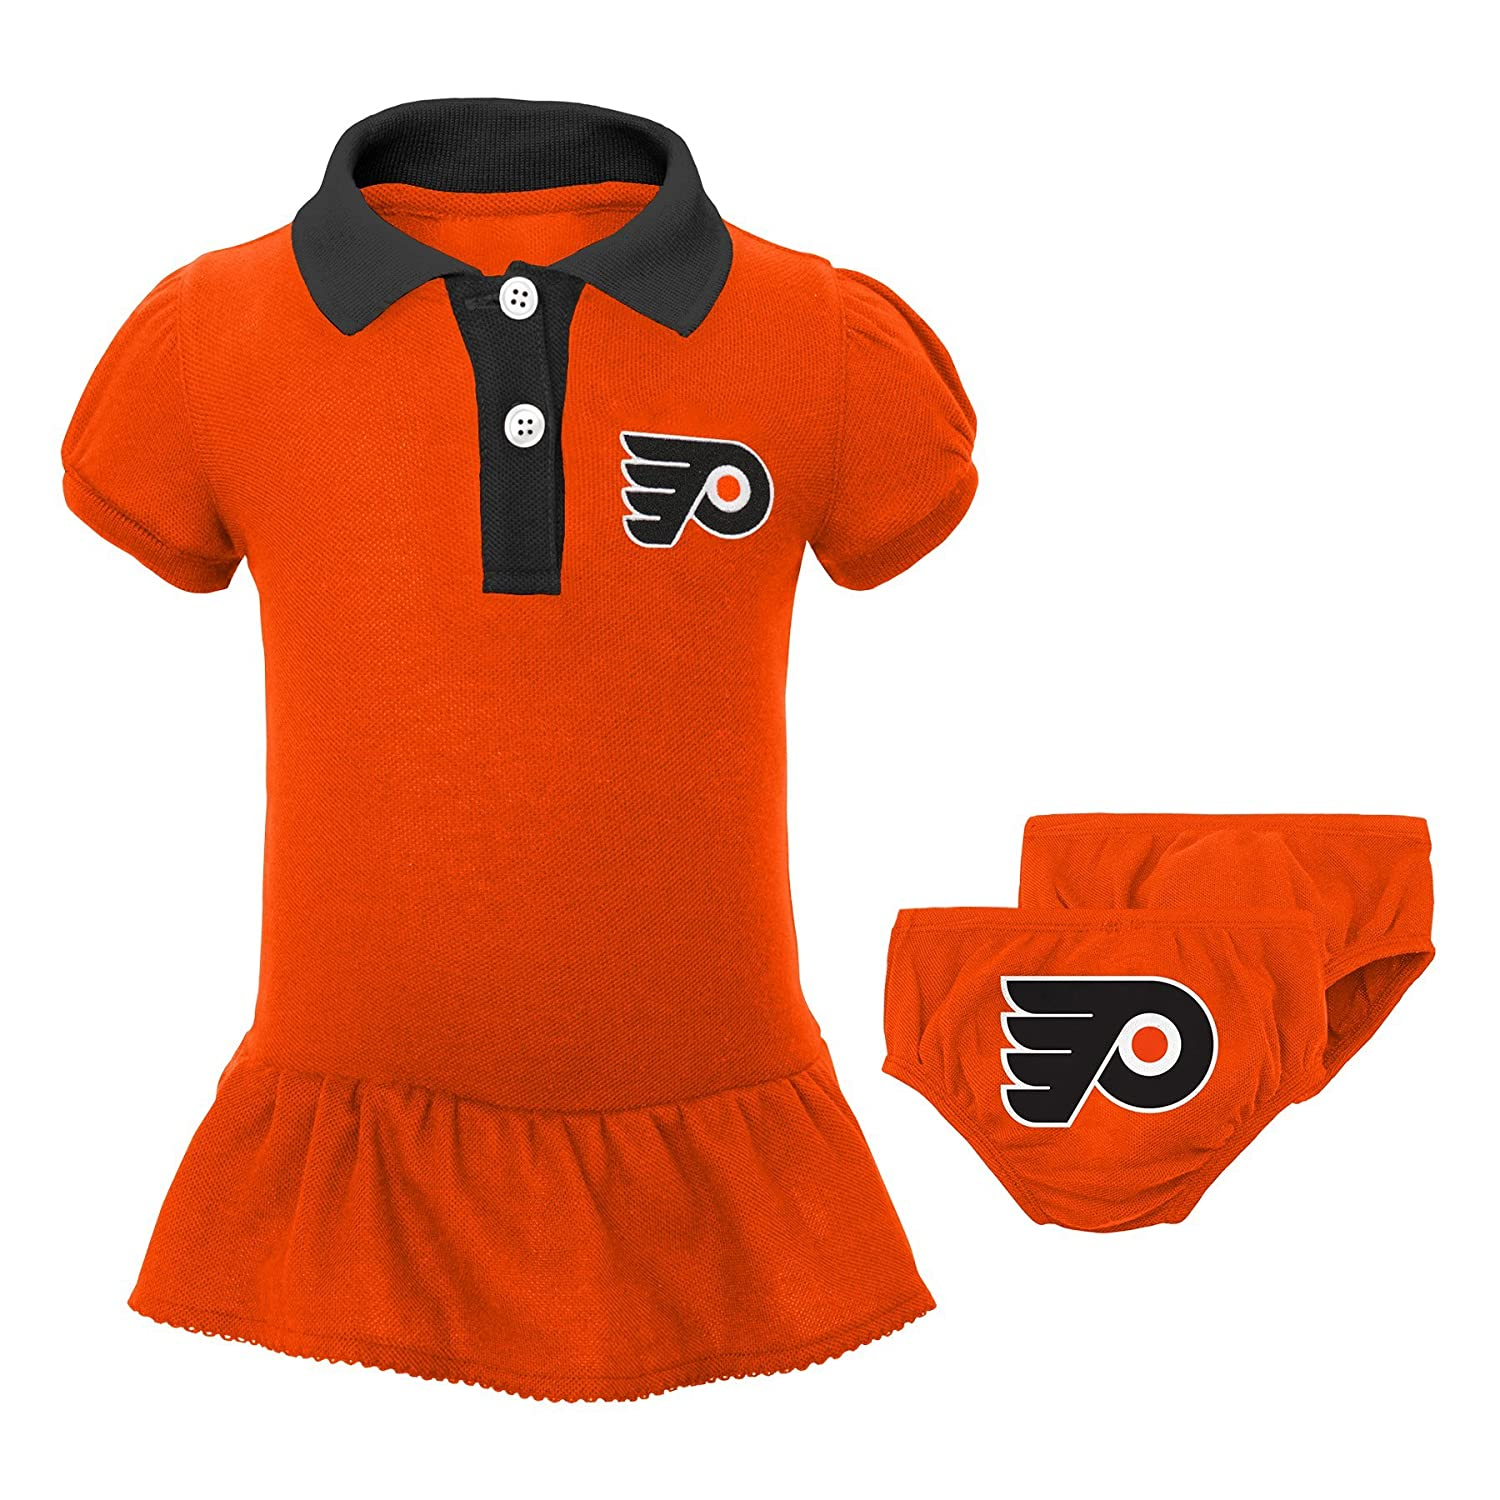 Outerstuff NHL Newborn /& Infant Little Prep Polo /& Diaper Cover Set